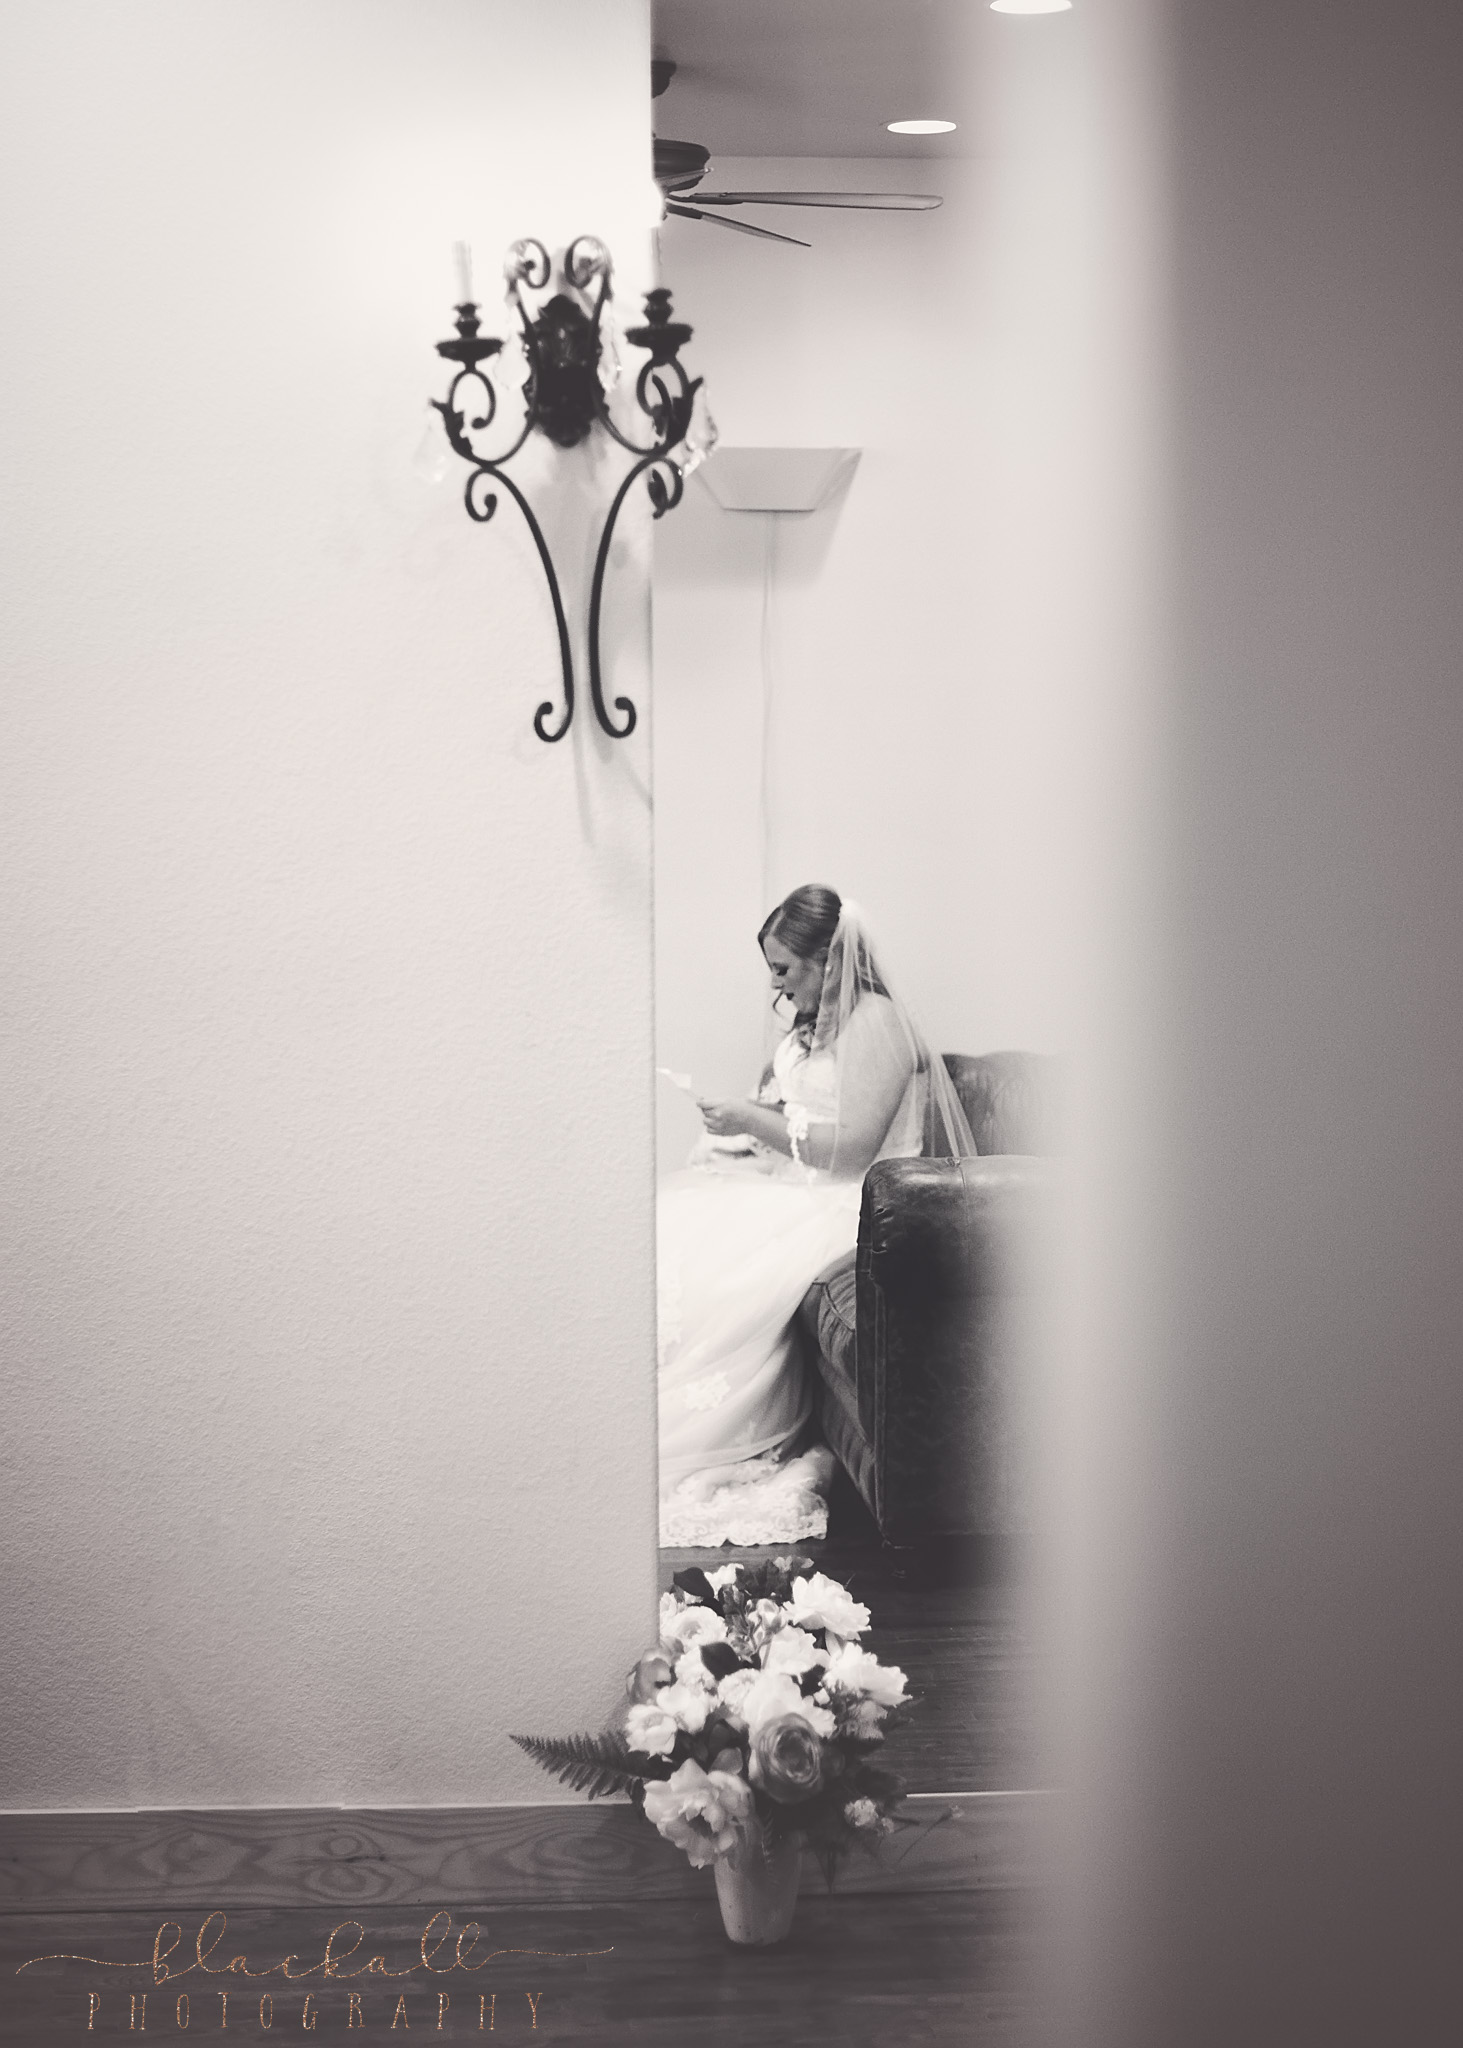 Reading a sweet letter from her groom